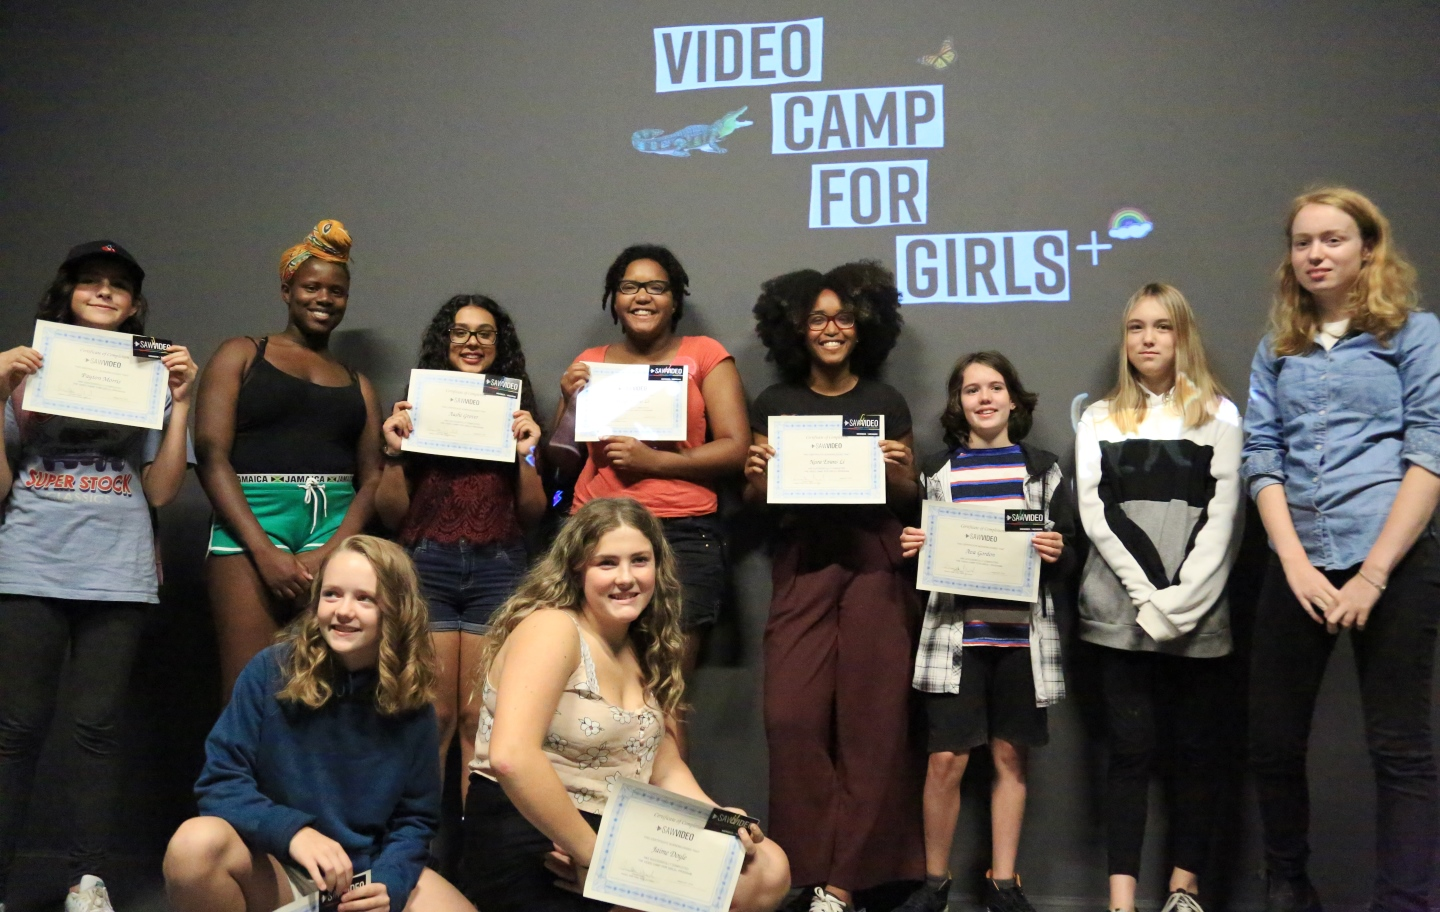 Video Camp For Girls Participants